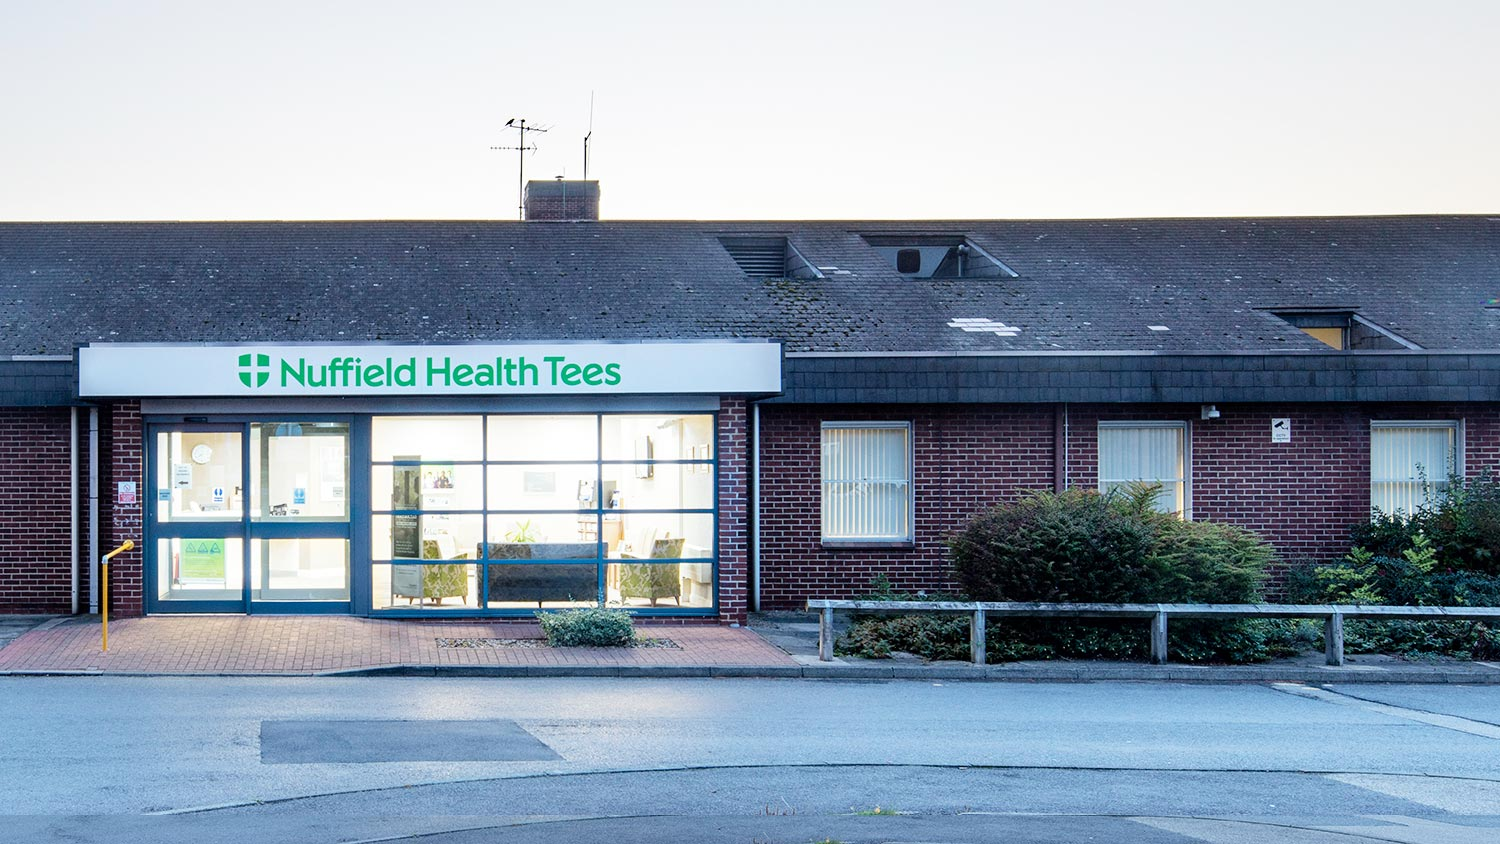 Nuffield Health Tees Hospital, Stockton-on-Tees